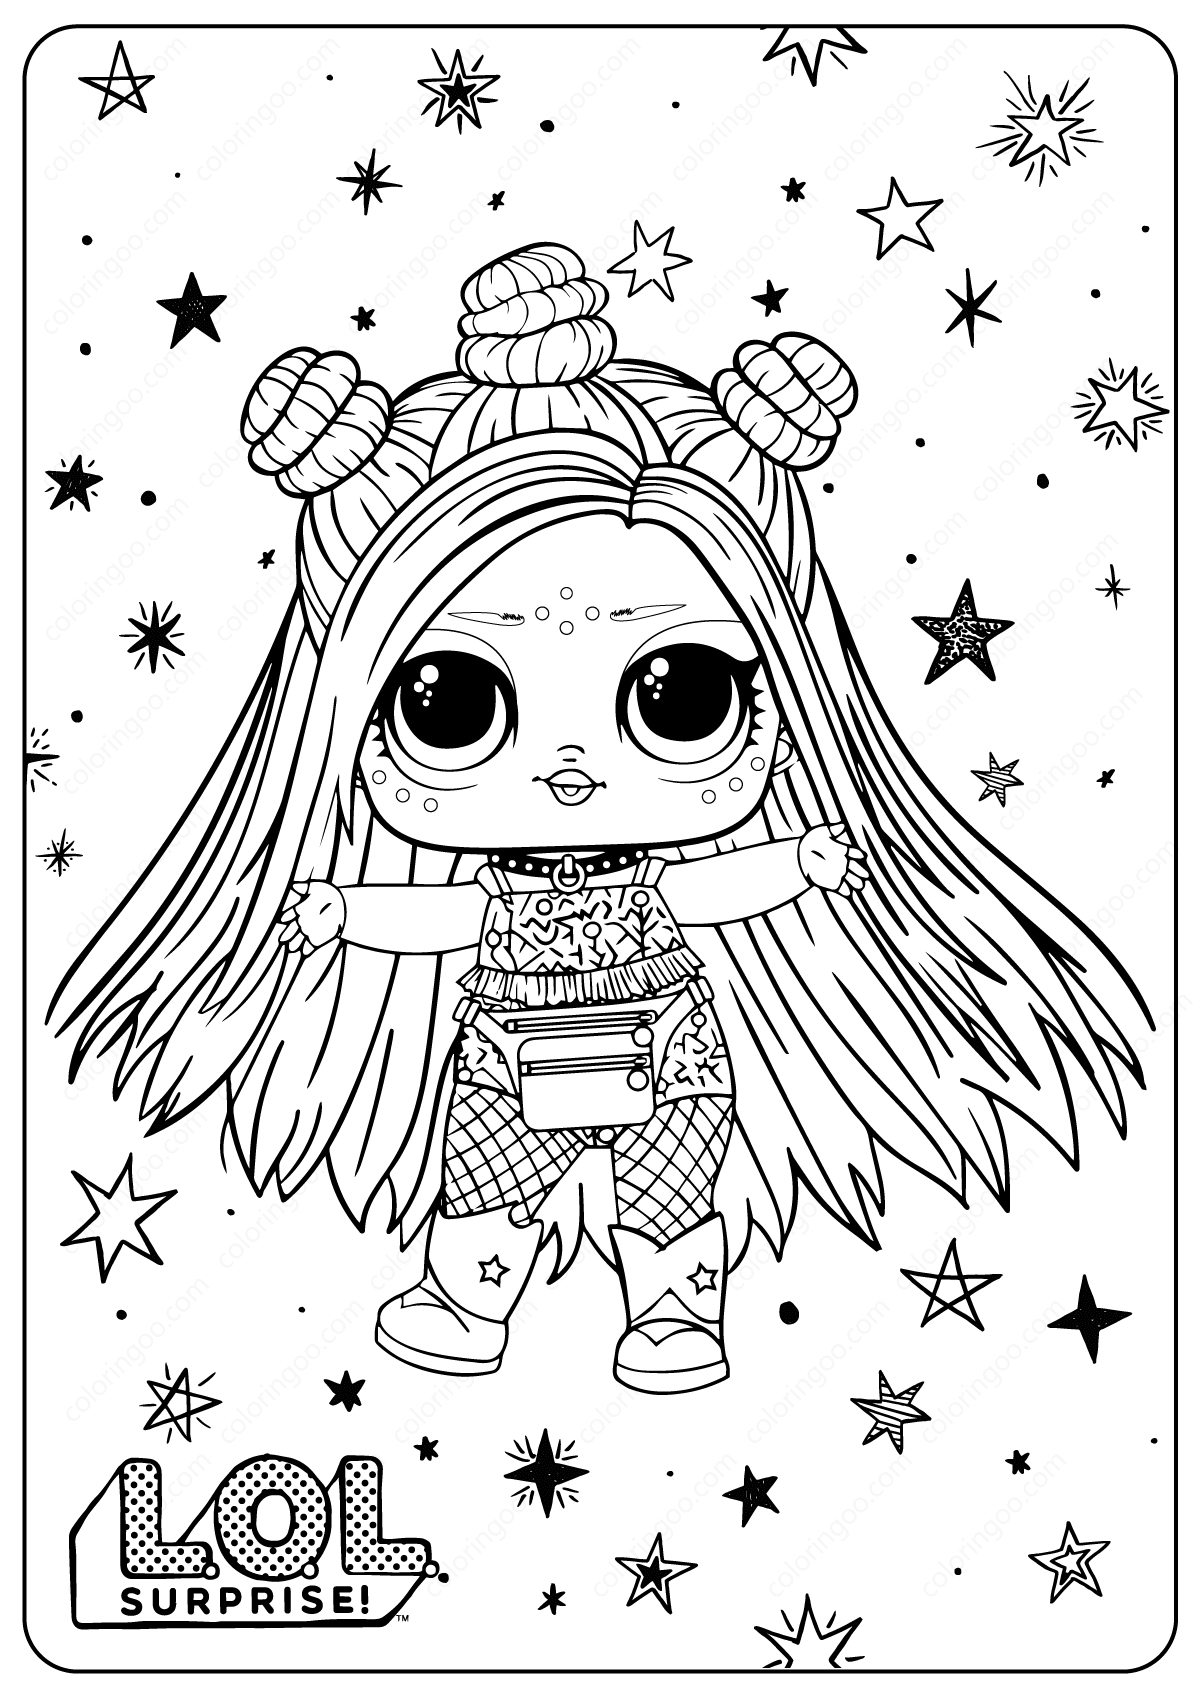 Lol Surprise Coloring Pages - Coloring Home